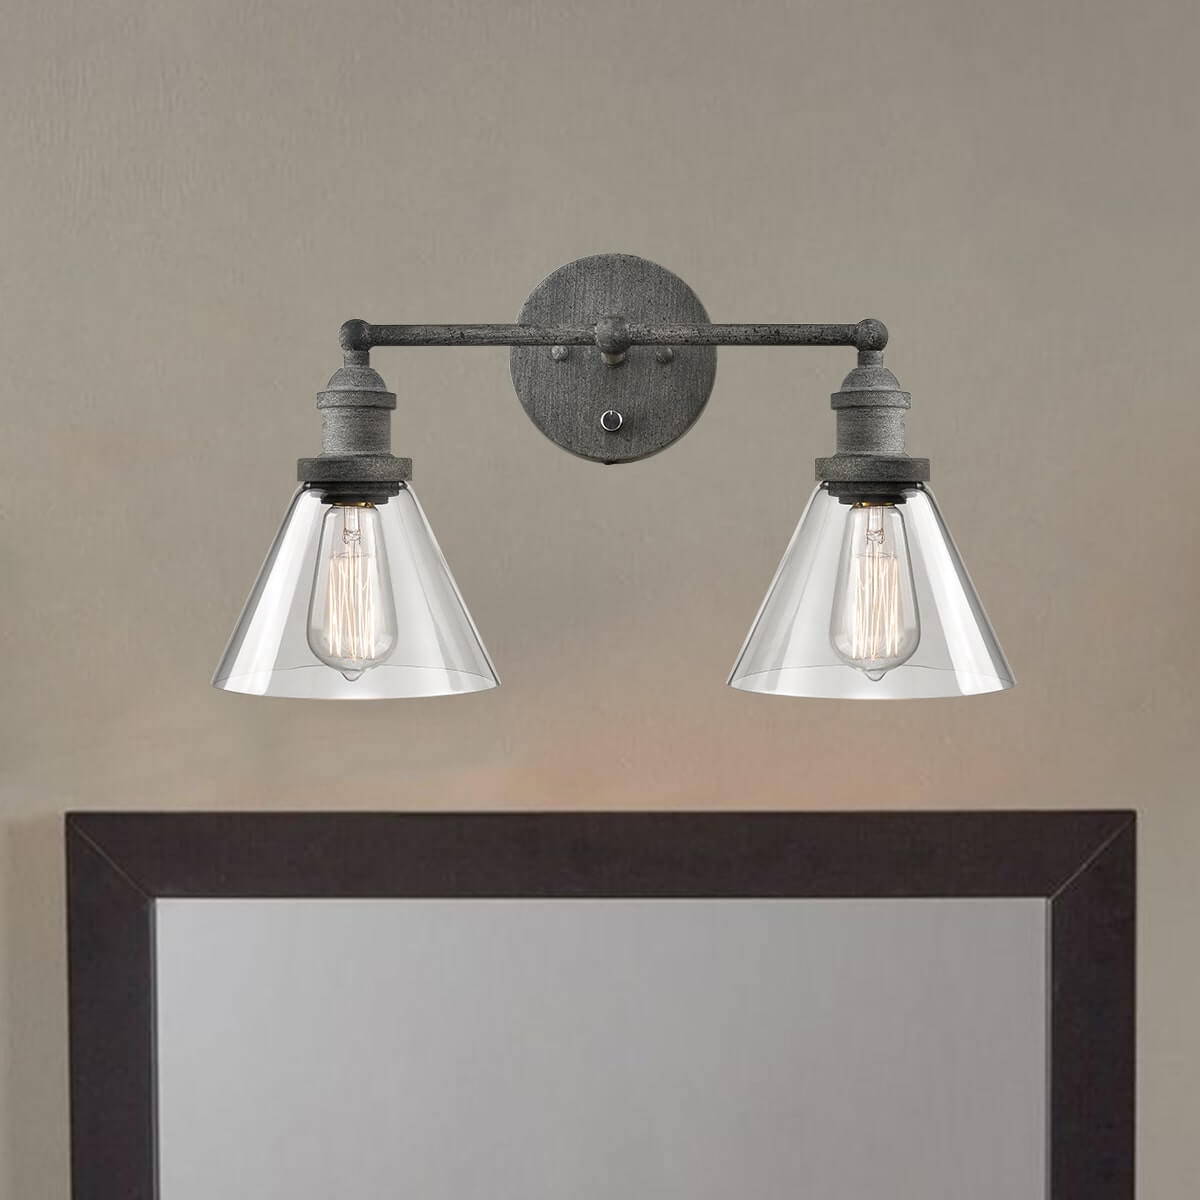 Rustic Mycete Glass 2 Light Hardwired & Plug in Bath Wall Sconce